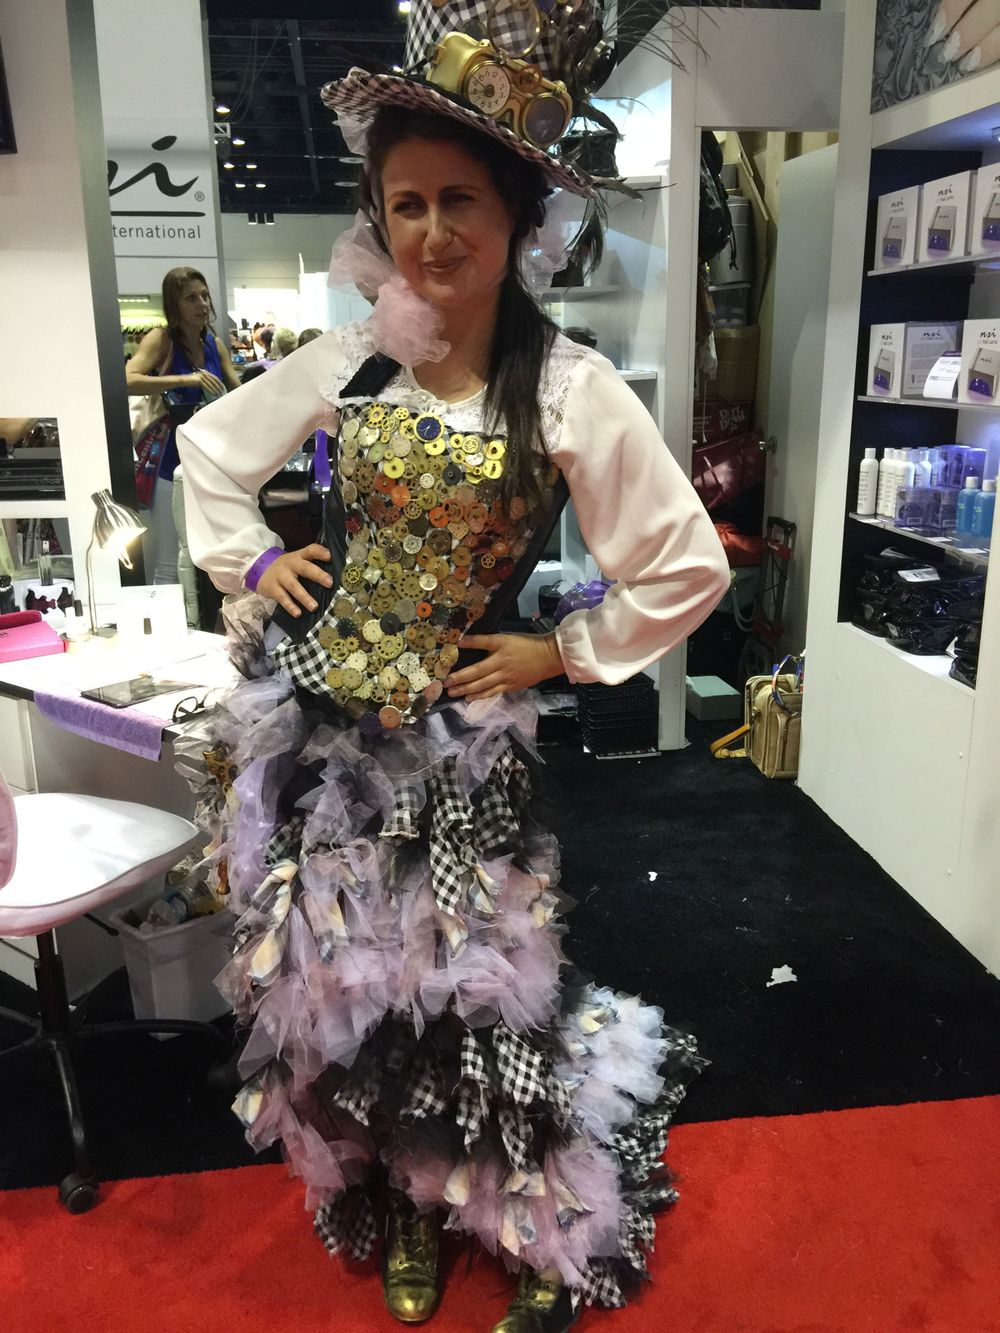 <p>This custom dress, worn by Kristina Bolinovska of Ukraine was topped by a hat that was decked out steampunk style.&nbsp;</p>